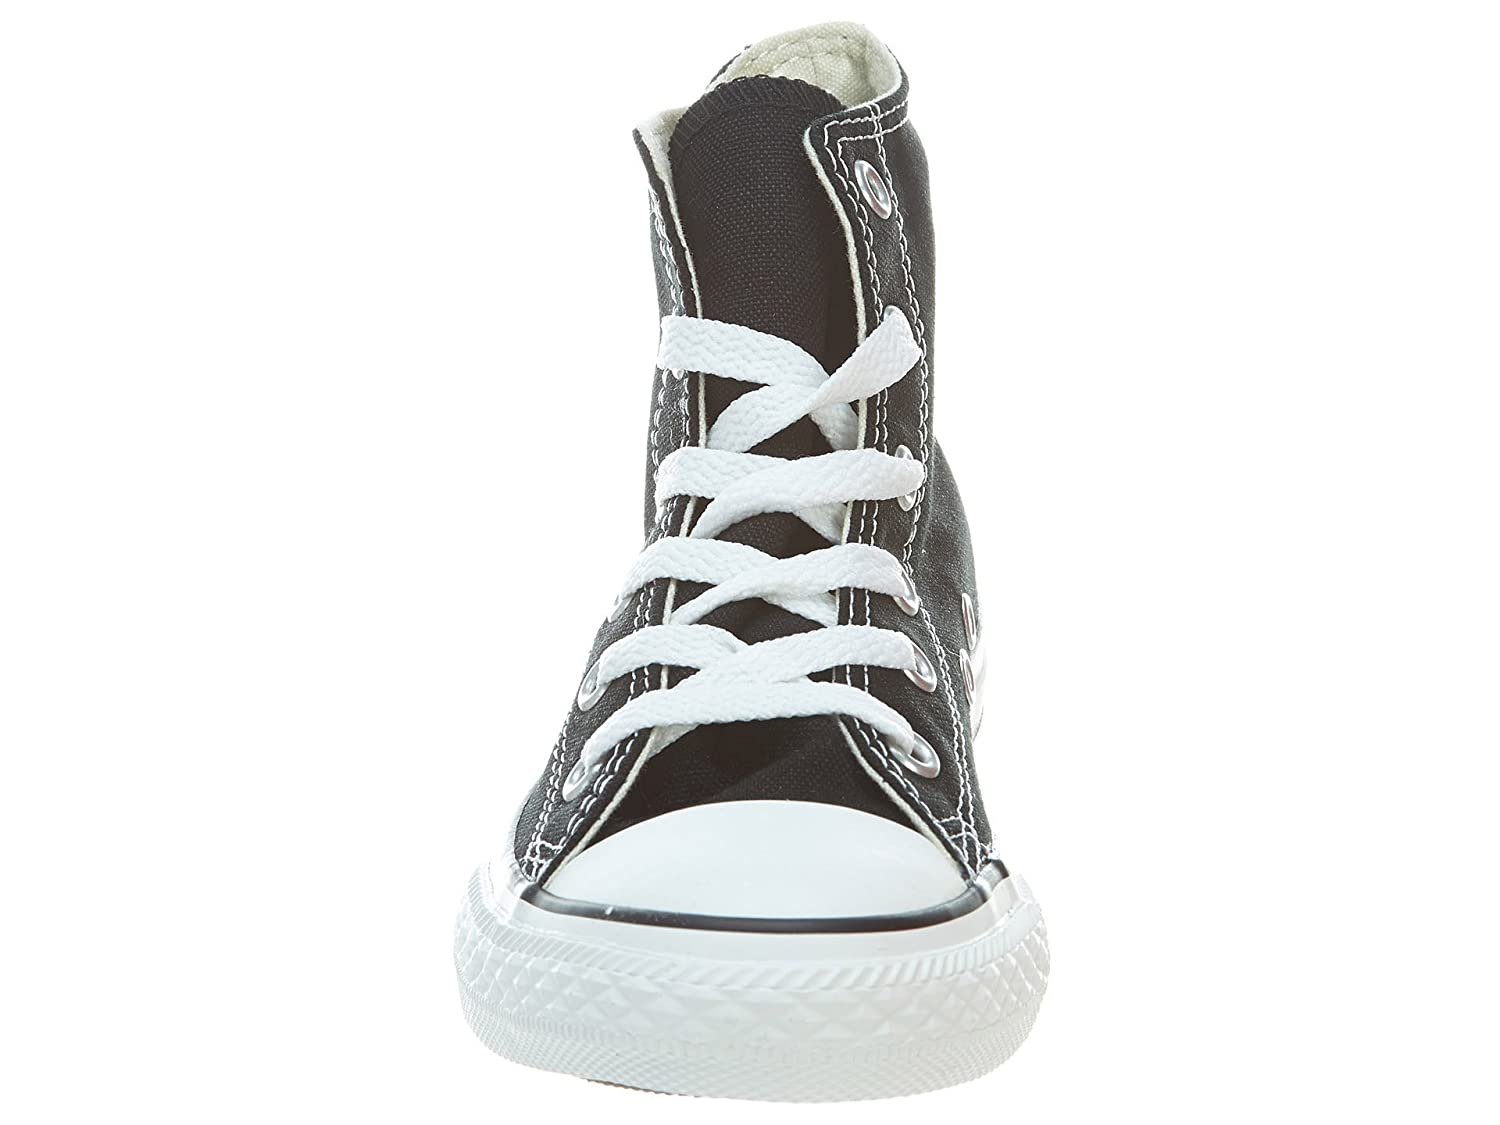 e44dd2b16d4a5 Amazon.com: Converse Yths Chuck Taylor All Star Hi Black Little Kids ...